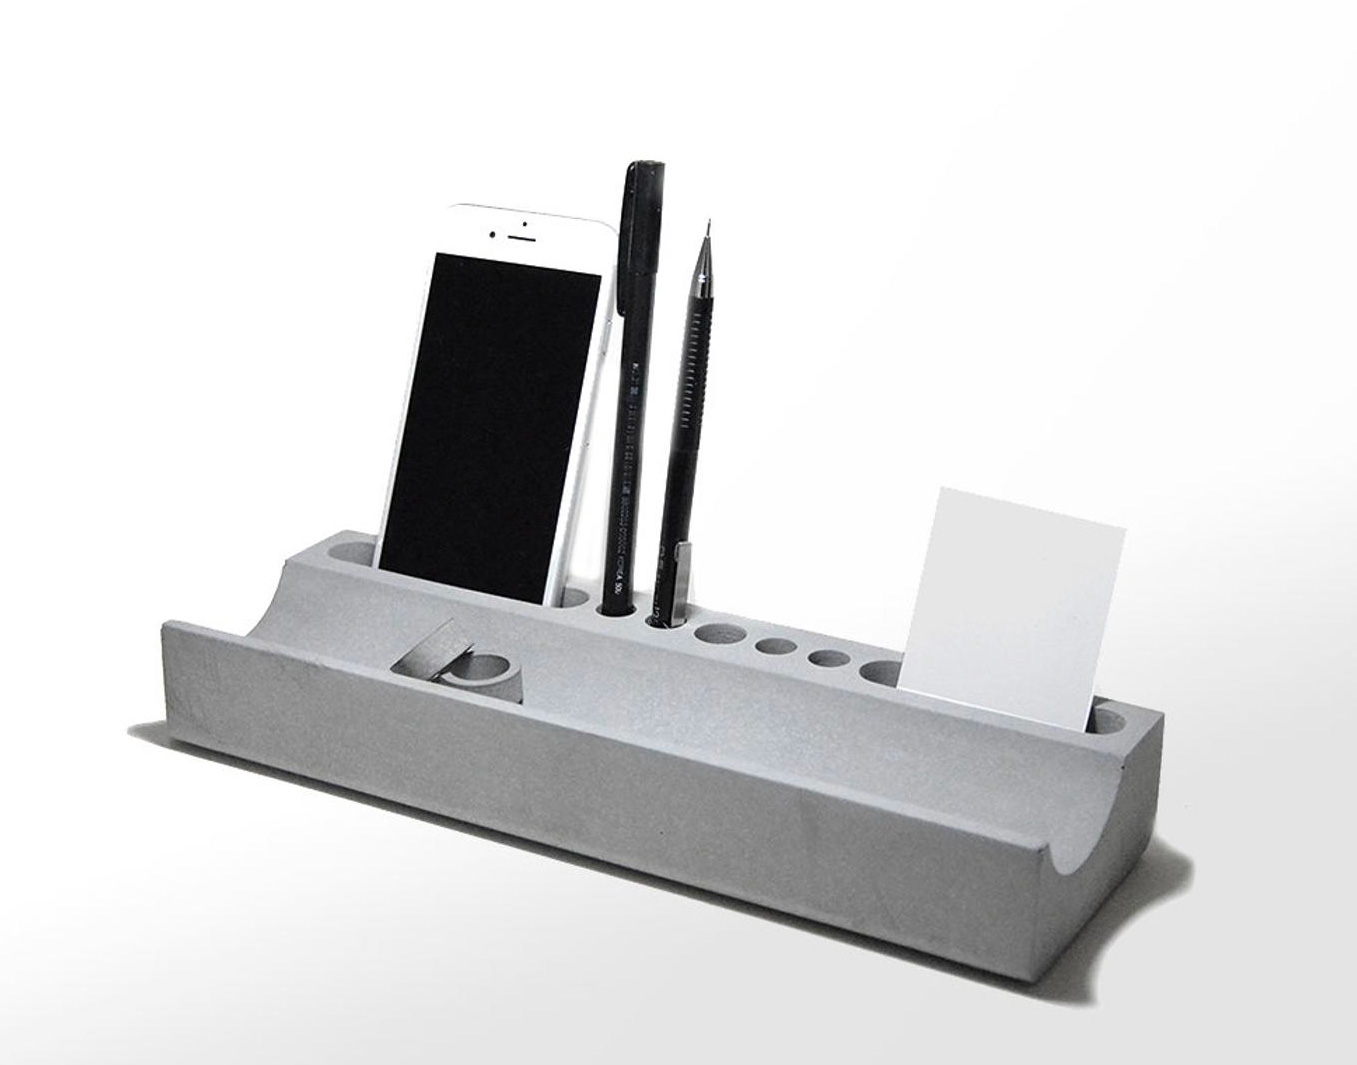 Tidy Up Your Desk with a Cast Concrete Organizer at werd.com